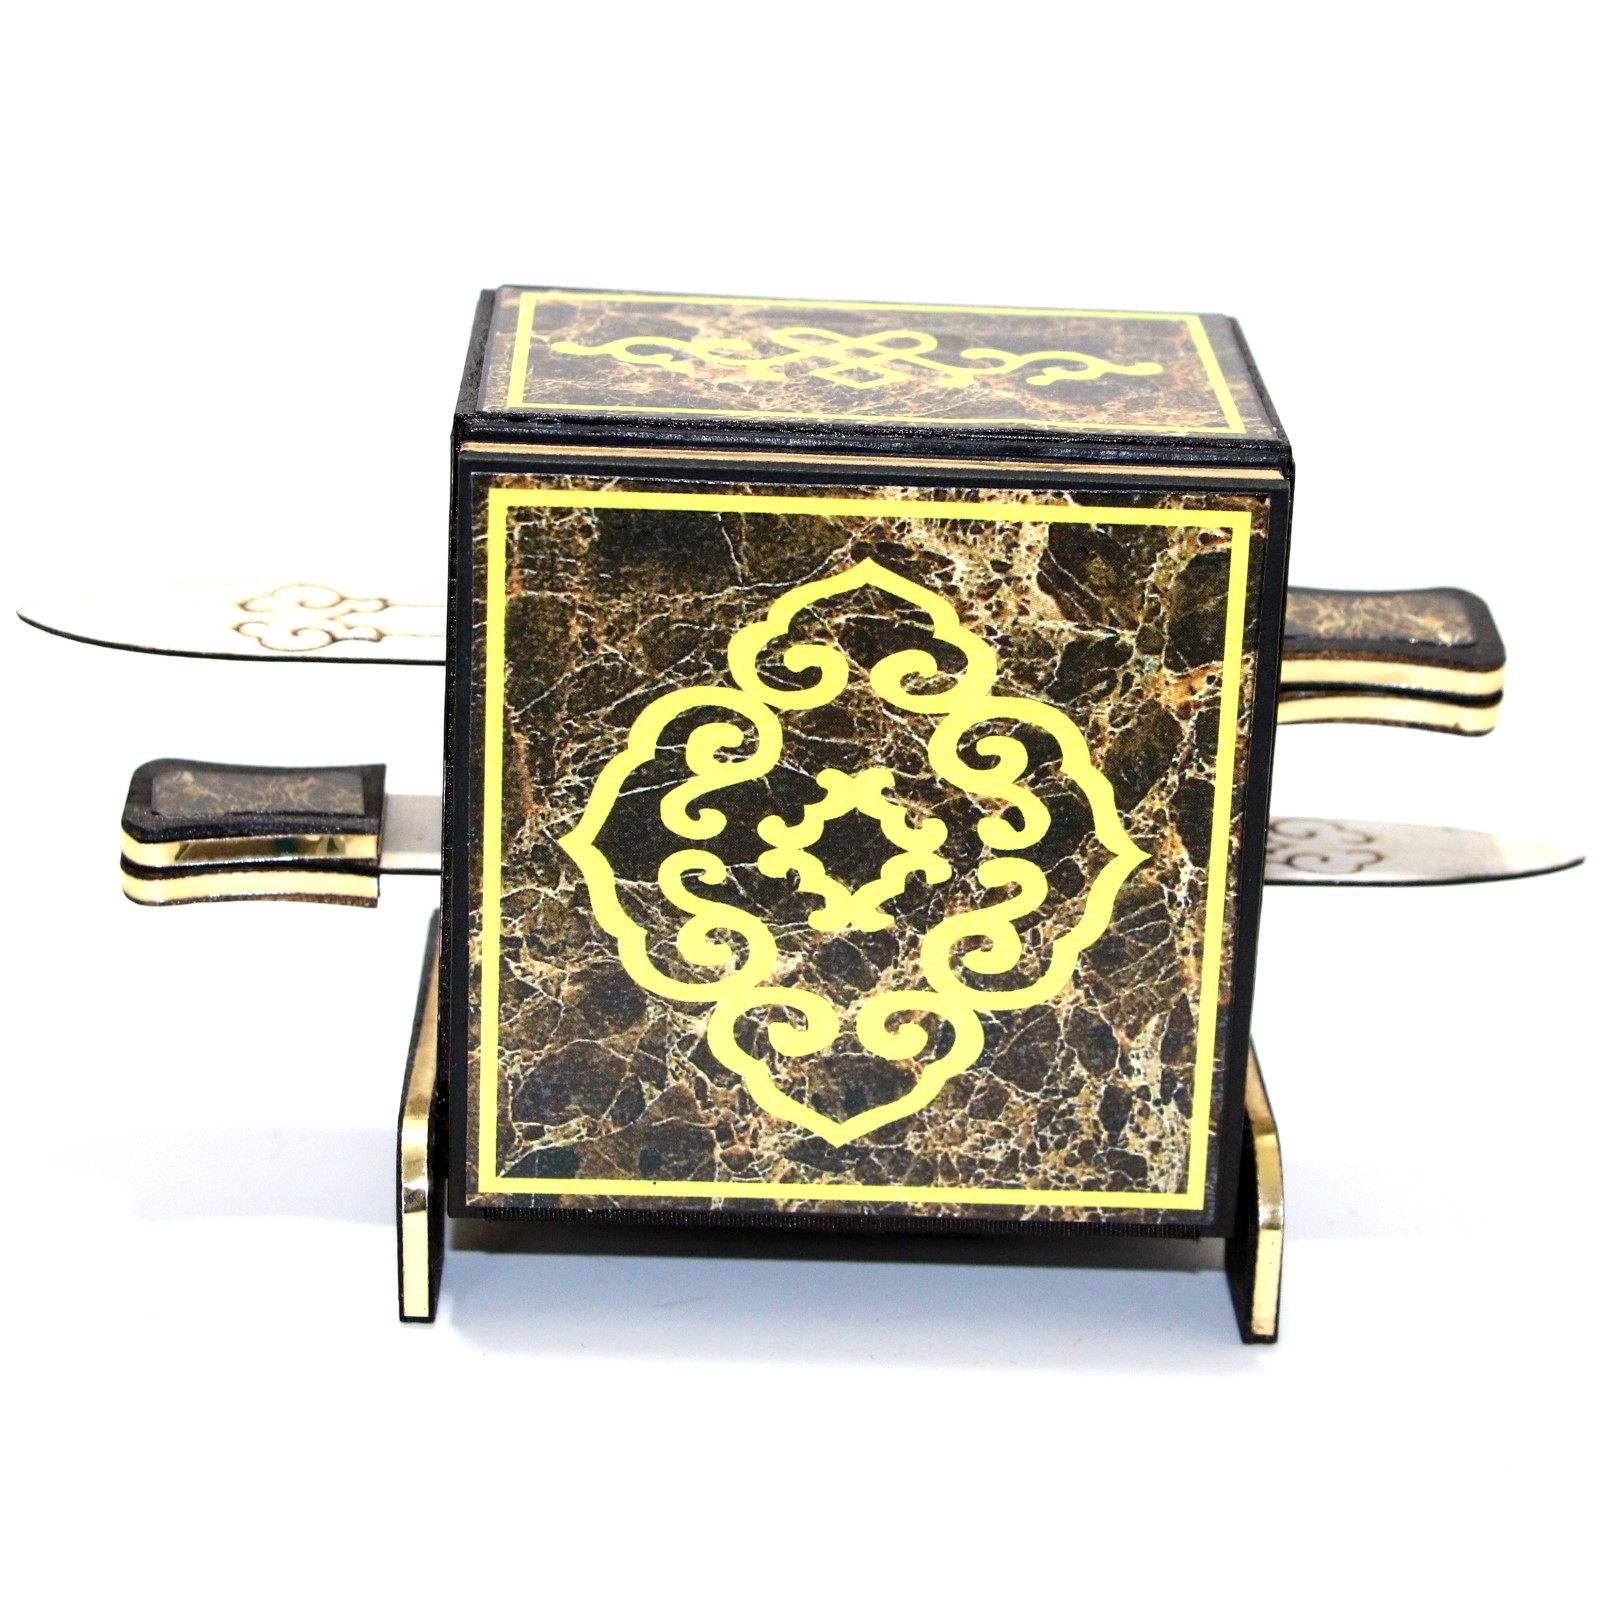 Deluxe Jewel Safe by Thomas Pohle